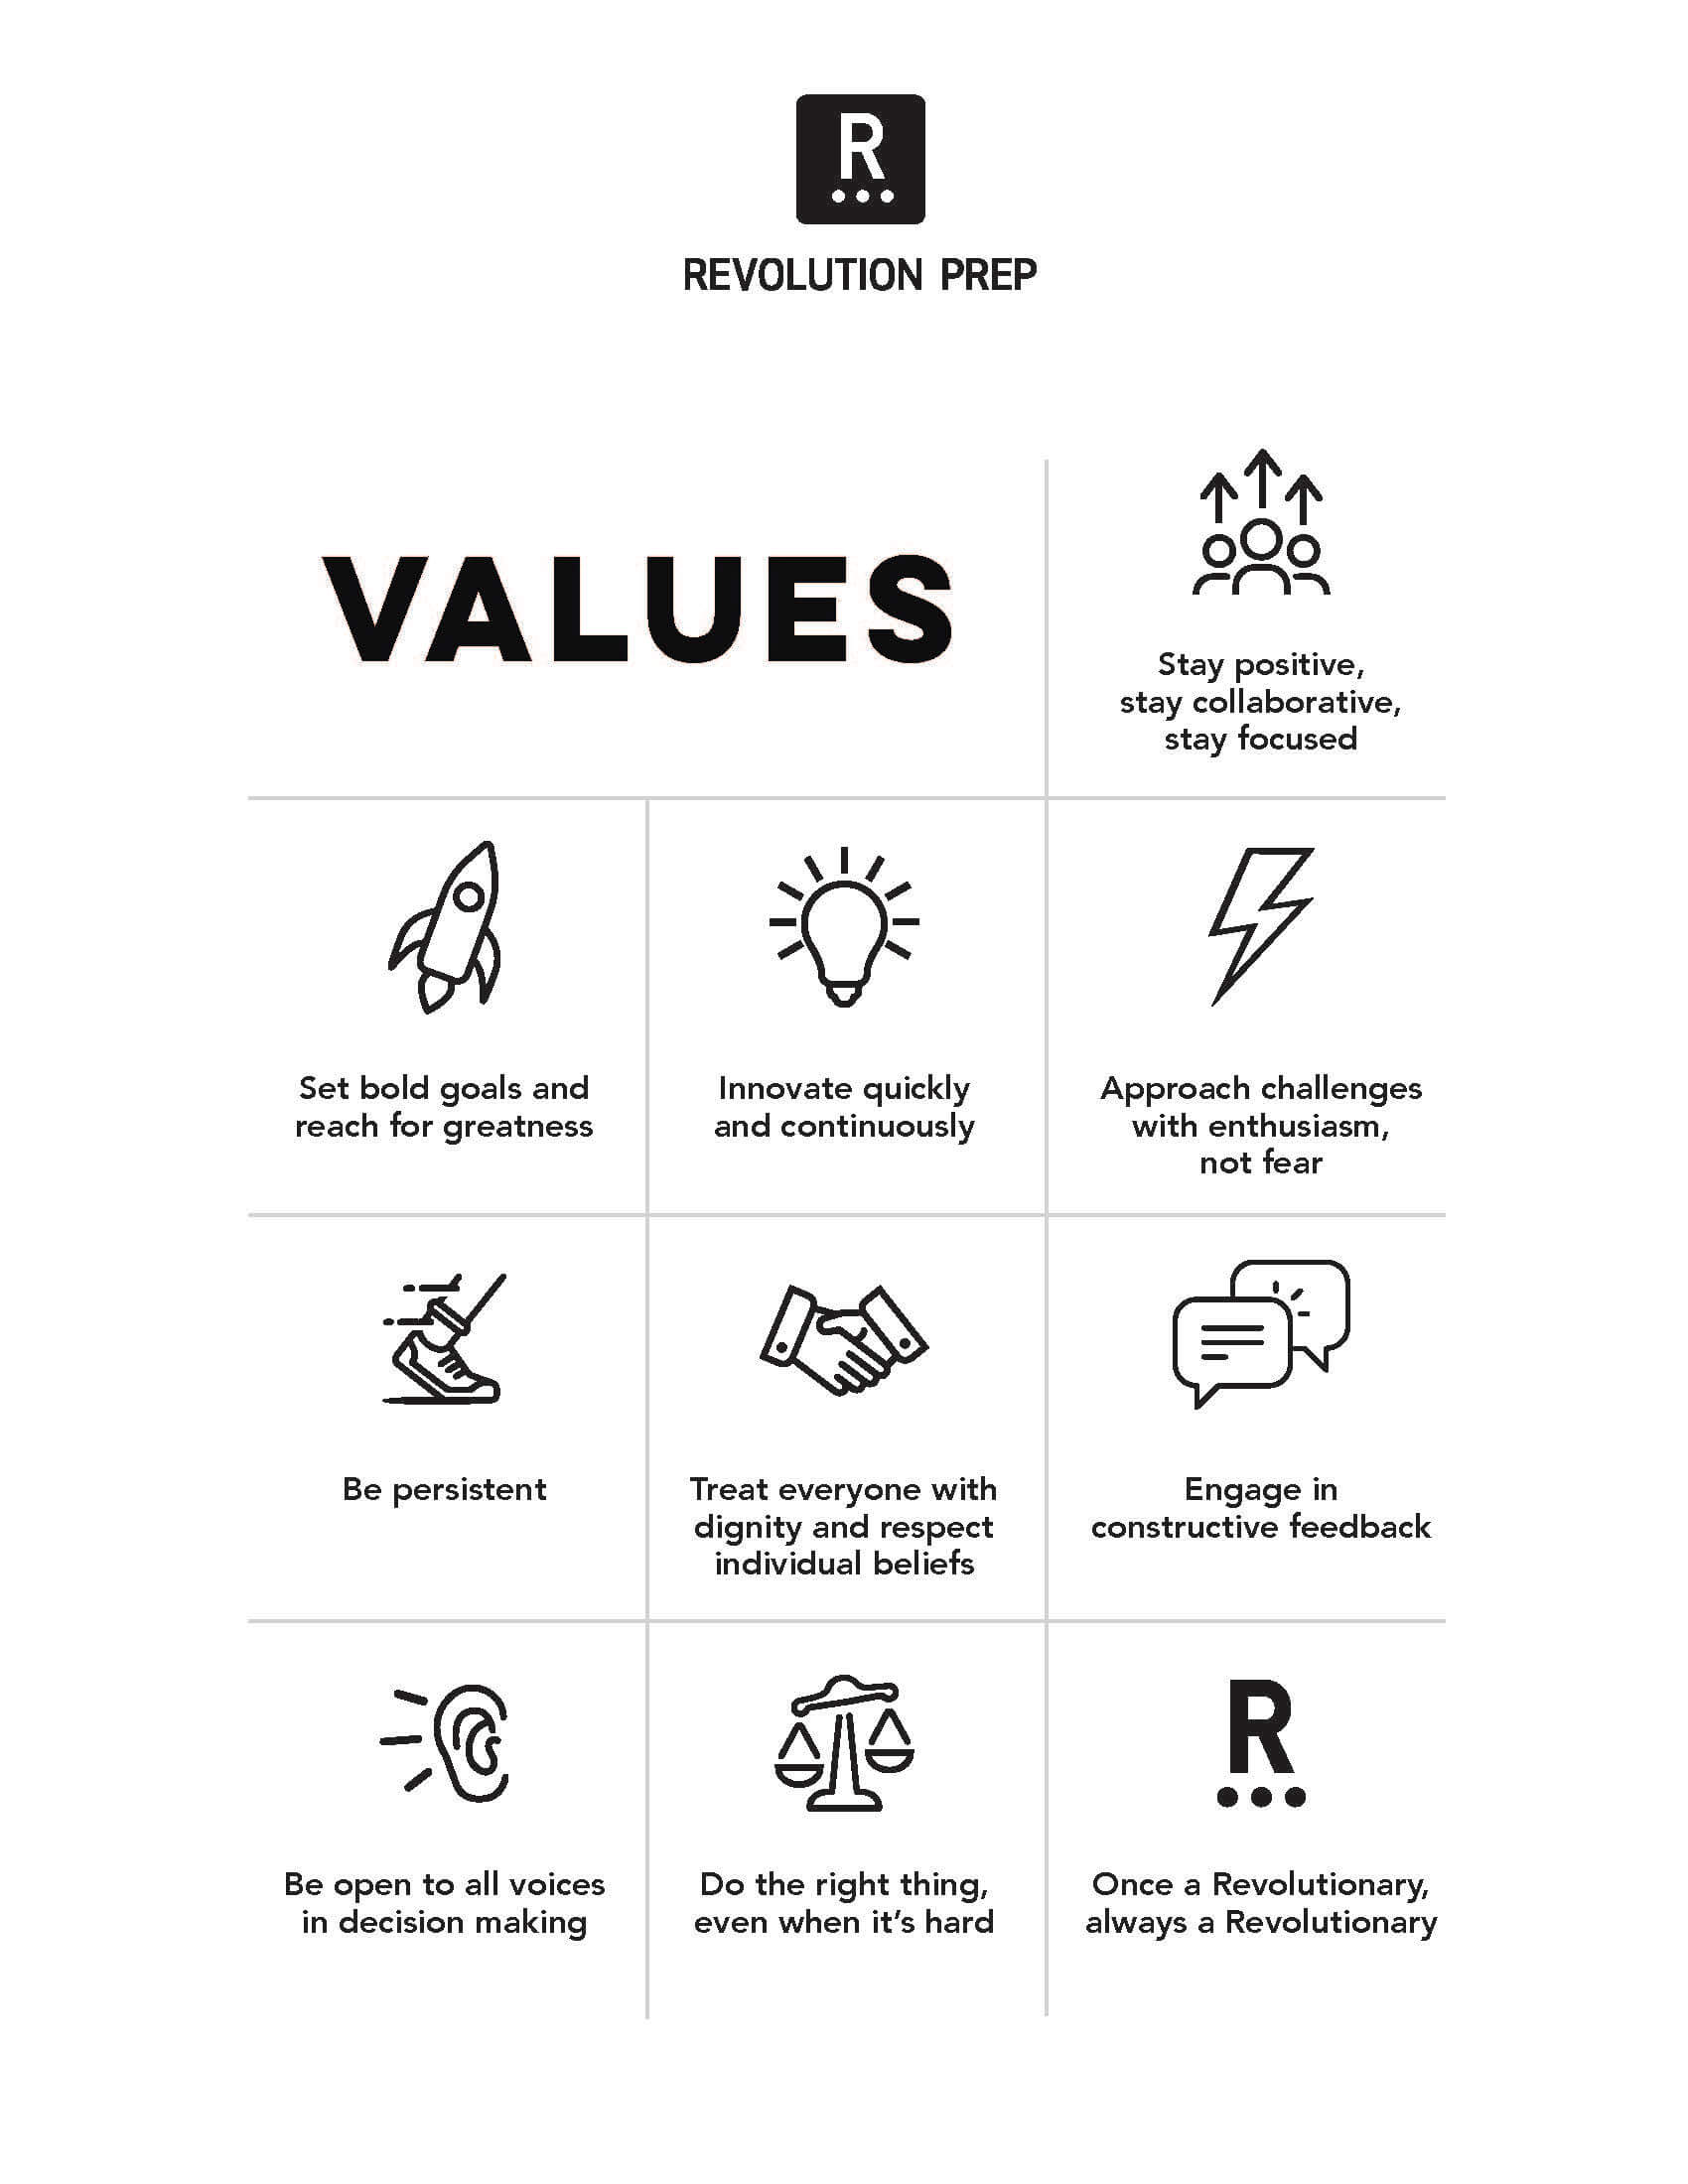 revolution prep values